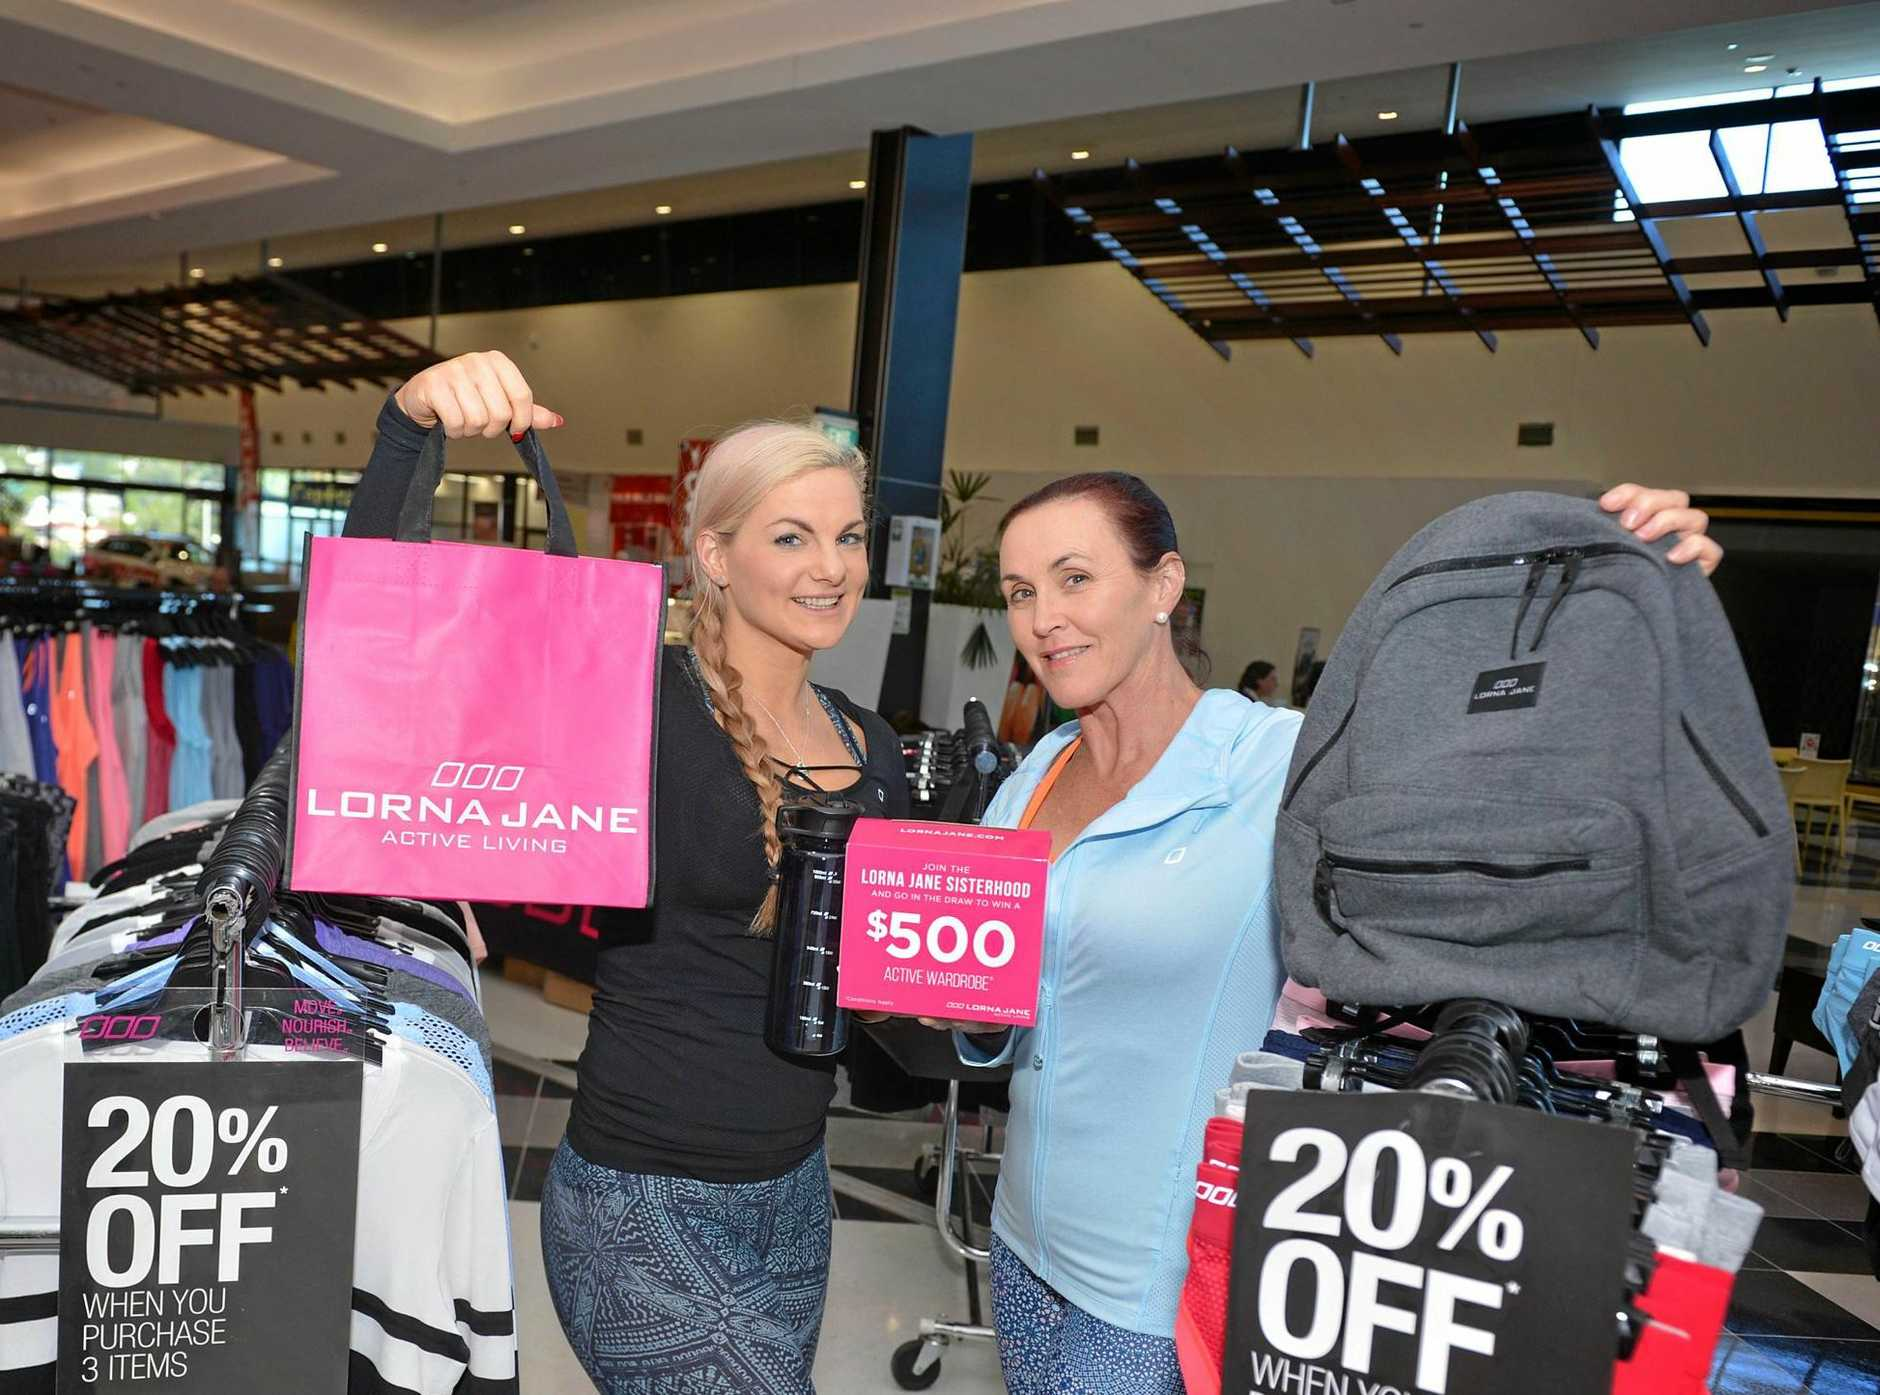 Michelle Lovett and Mariah Carew at Lorna Jane's pop-up shop last year. The popular activewear brand will once again be back in town.